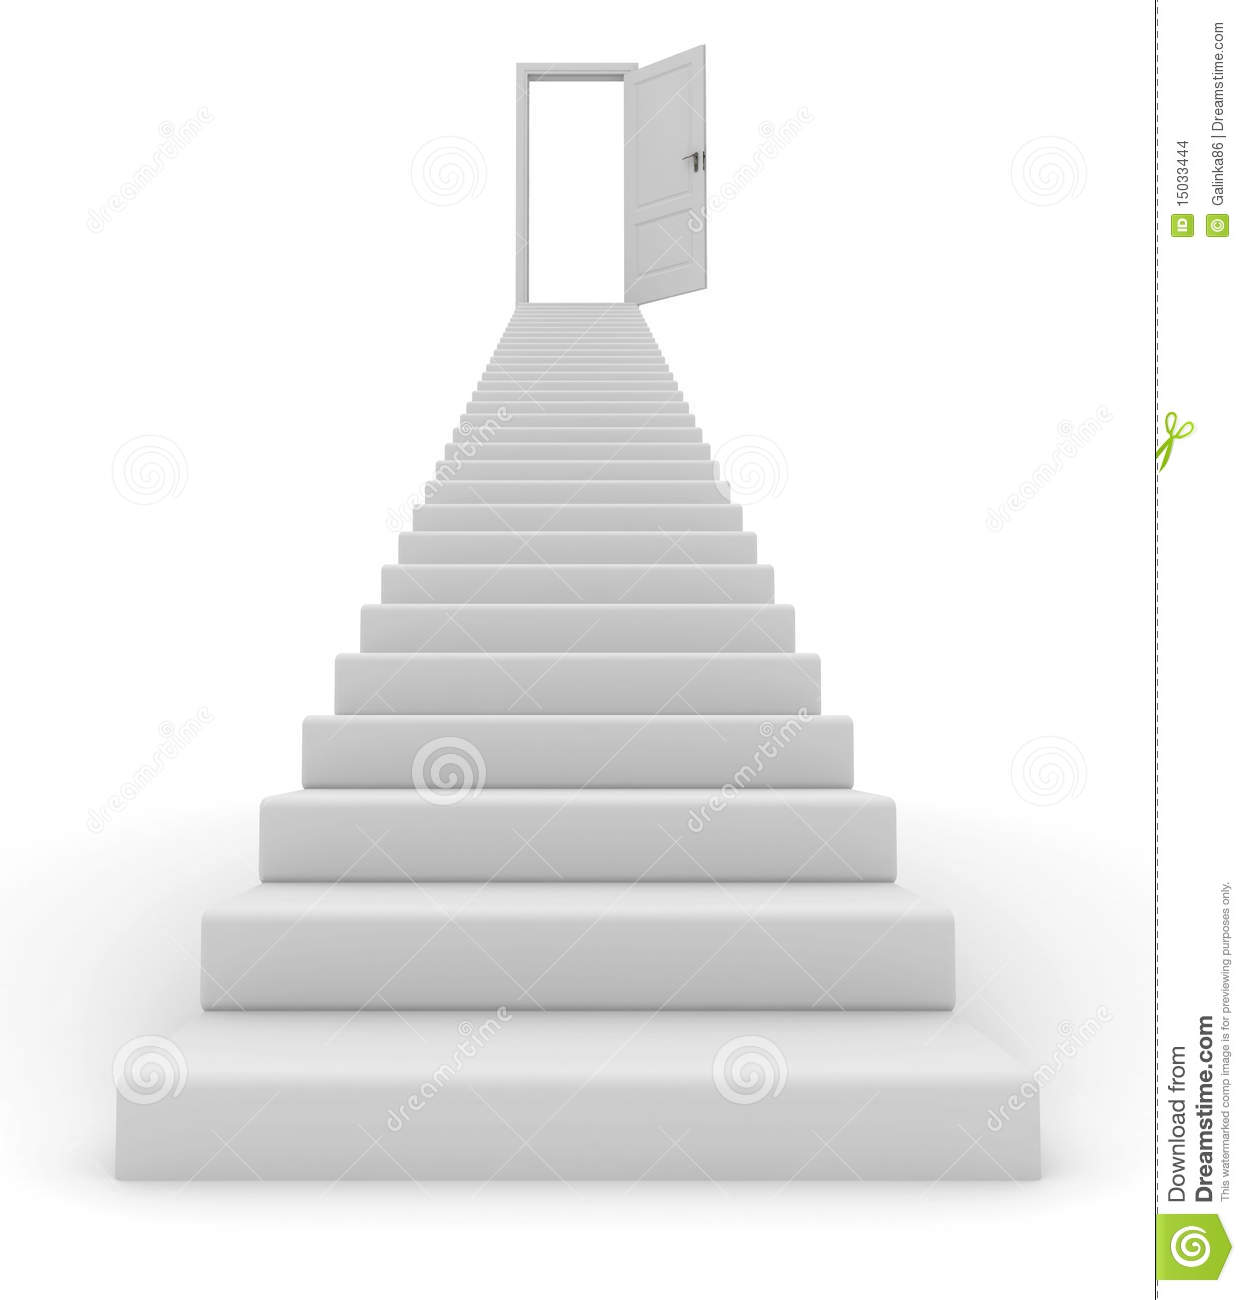 Stairs and open door stock illustration. Image of staircase - 15033444